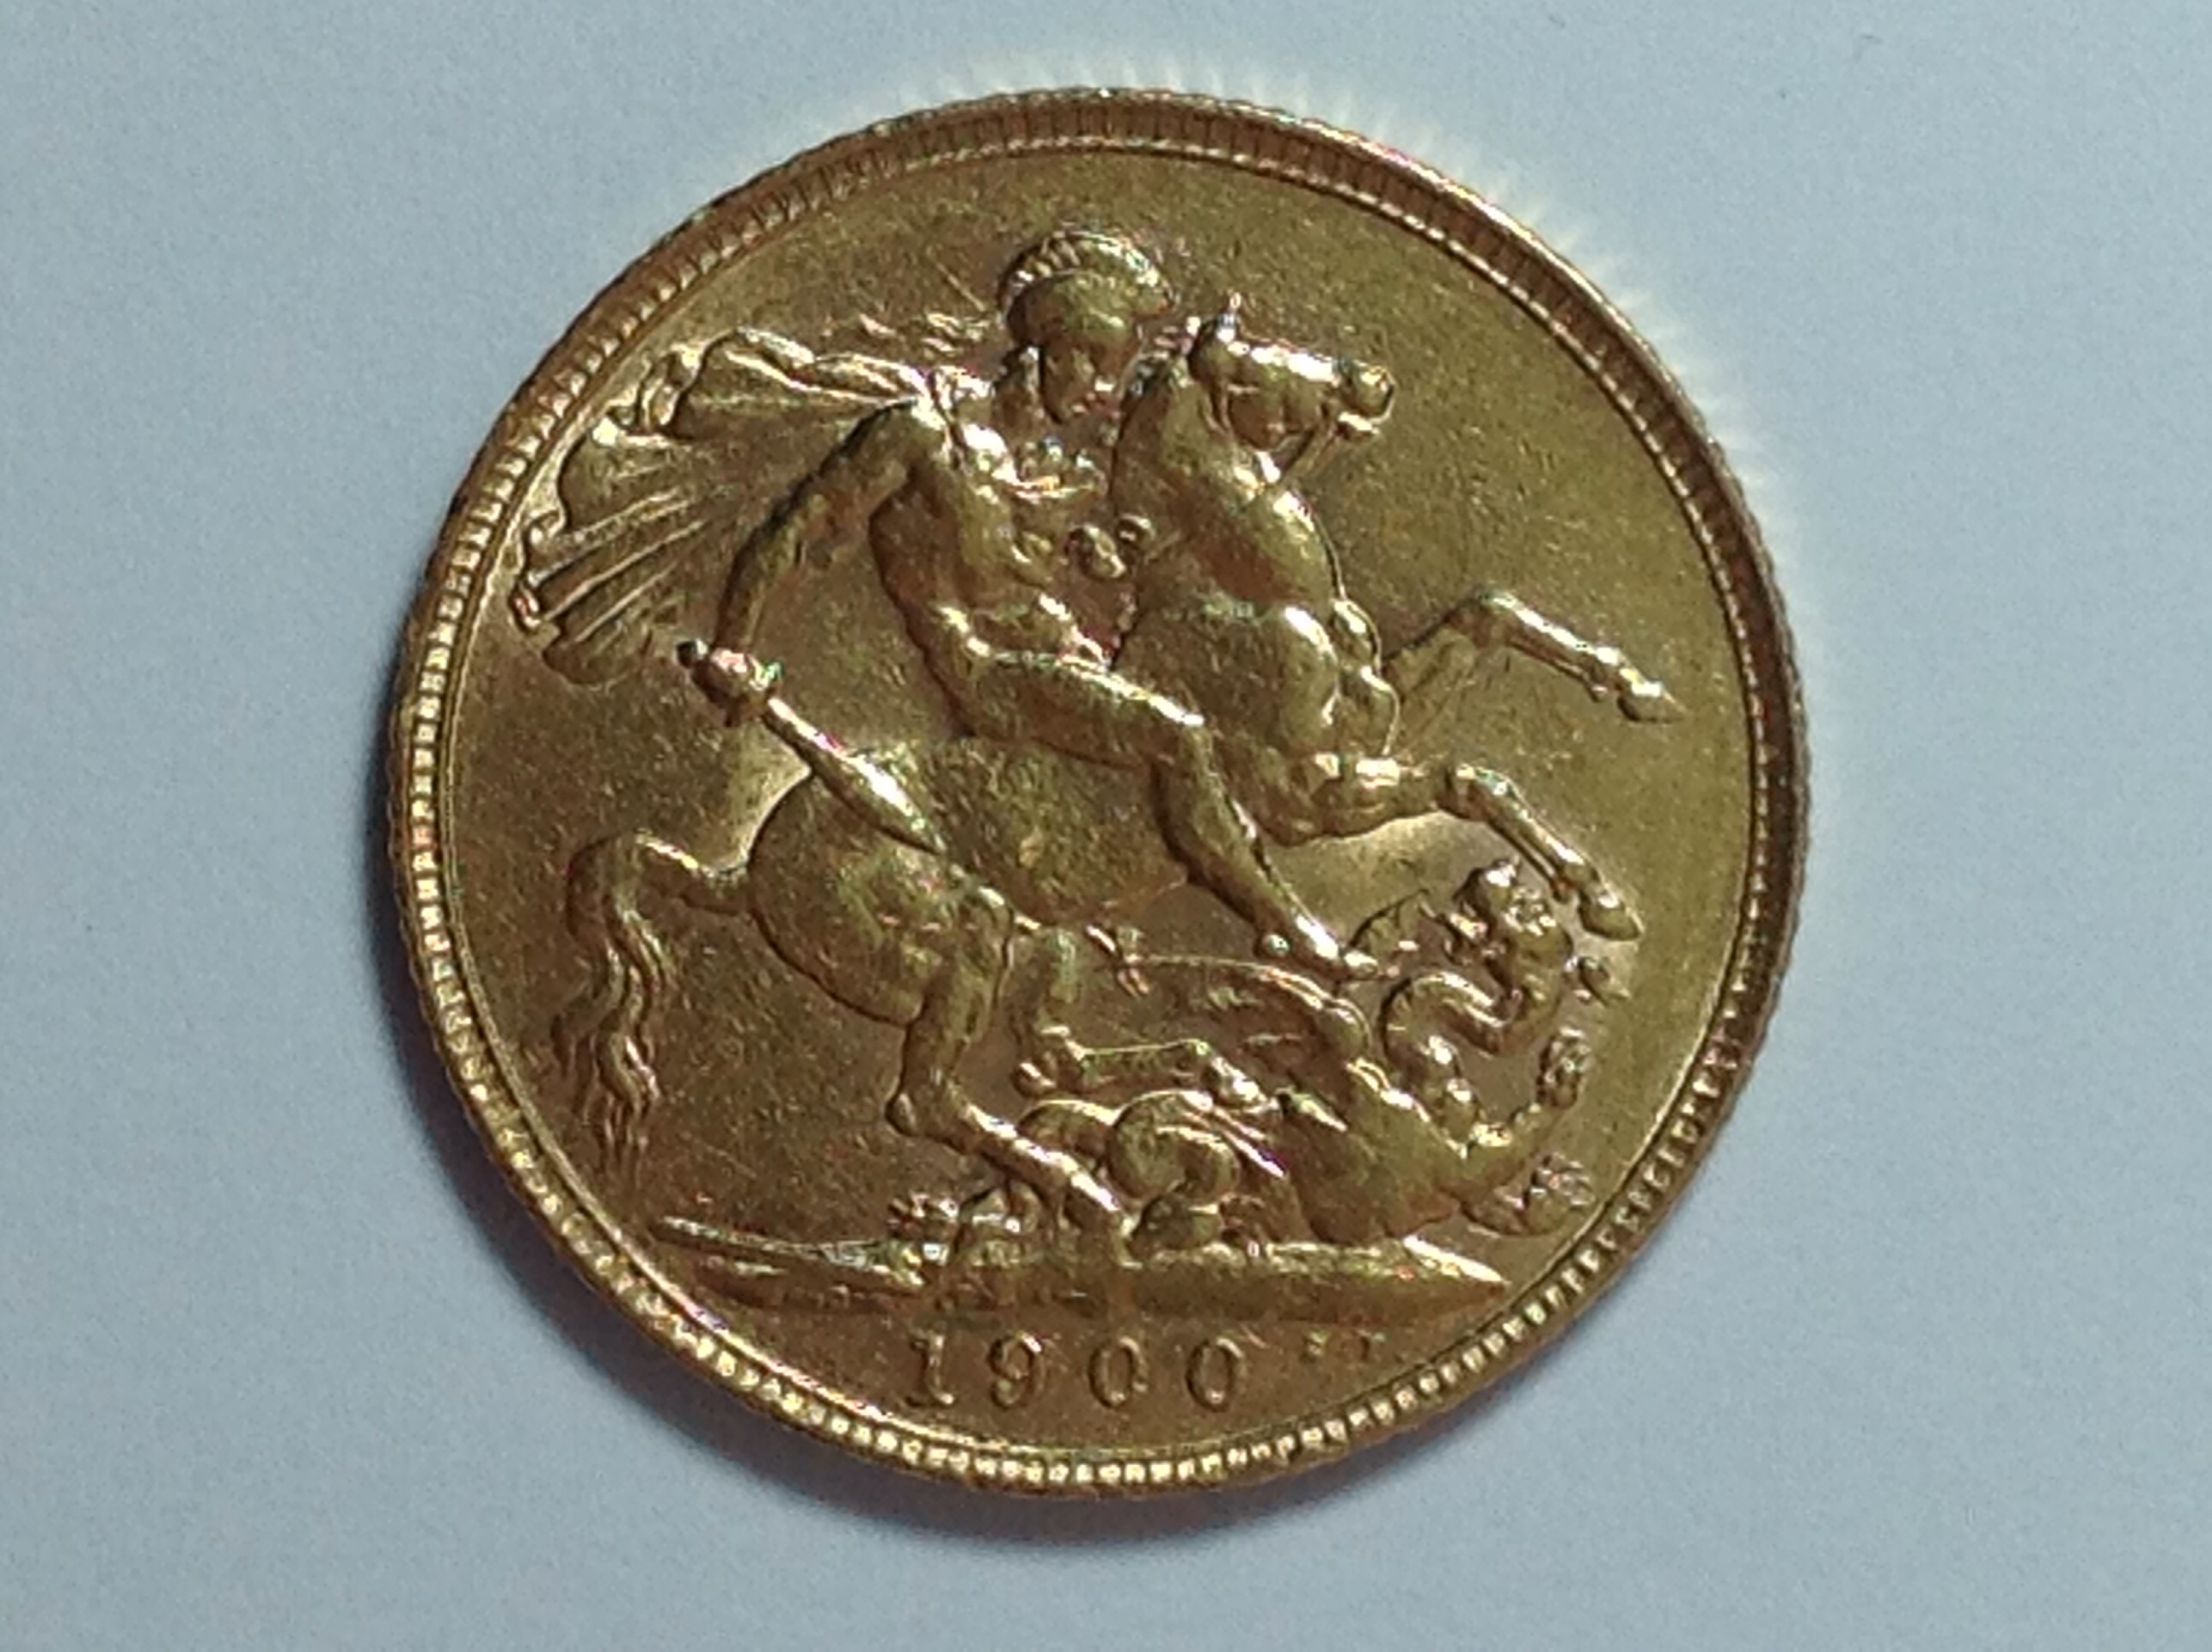 Queen Victoria Old Head Gold Sovereign 1900 London